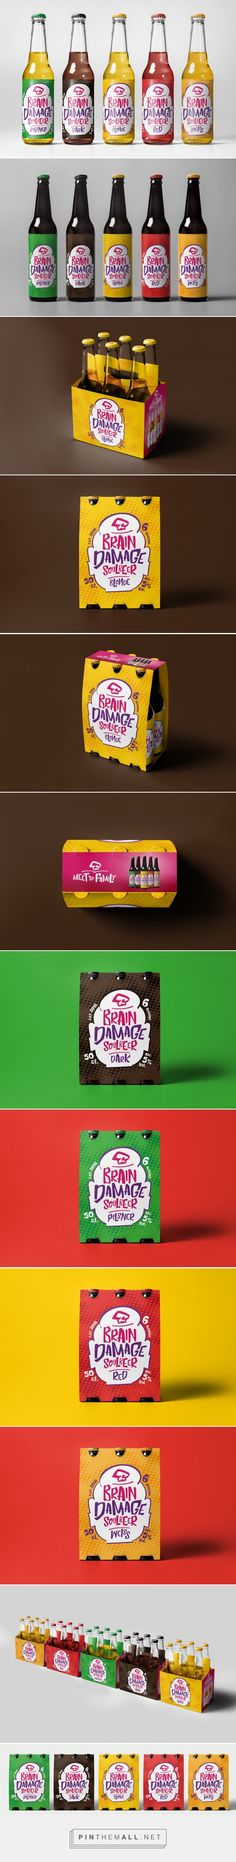 Brain Damage   SoulBeer (Concept) - Packaging of the World - Creative Package Design Gallery - http://www.packagingoftheworld.com/2016/10/brain-damage-soulbeer-concept.html